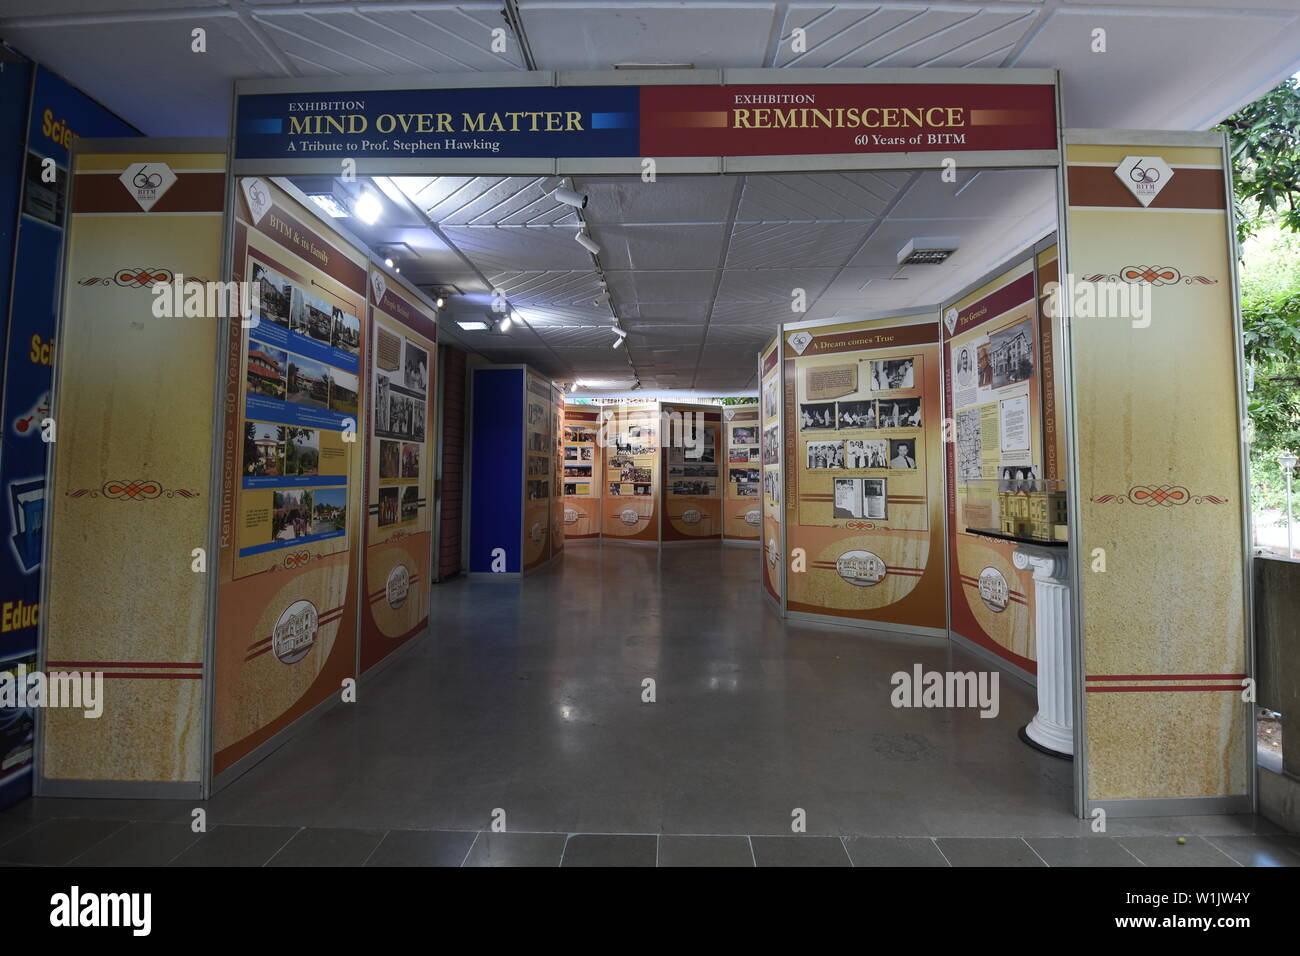 Kolkata, India. 22nd June, 2019. Reminiscence. An exhibition on 60 years of the Birla Industrial & Technological Museum, 19A Gurusaday Road. Stock Photo